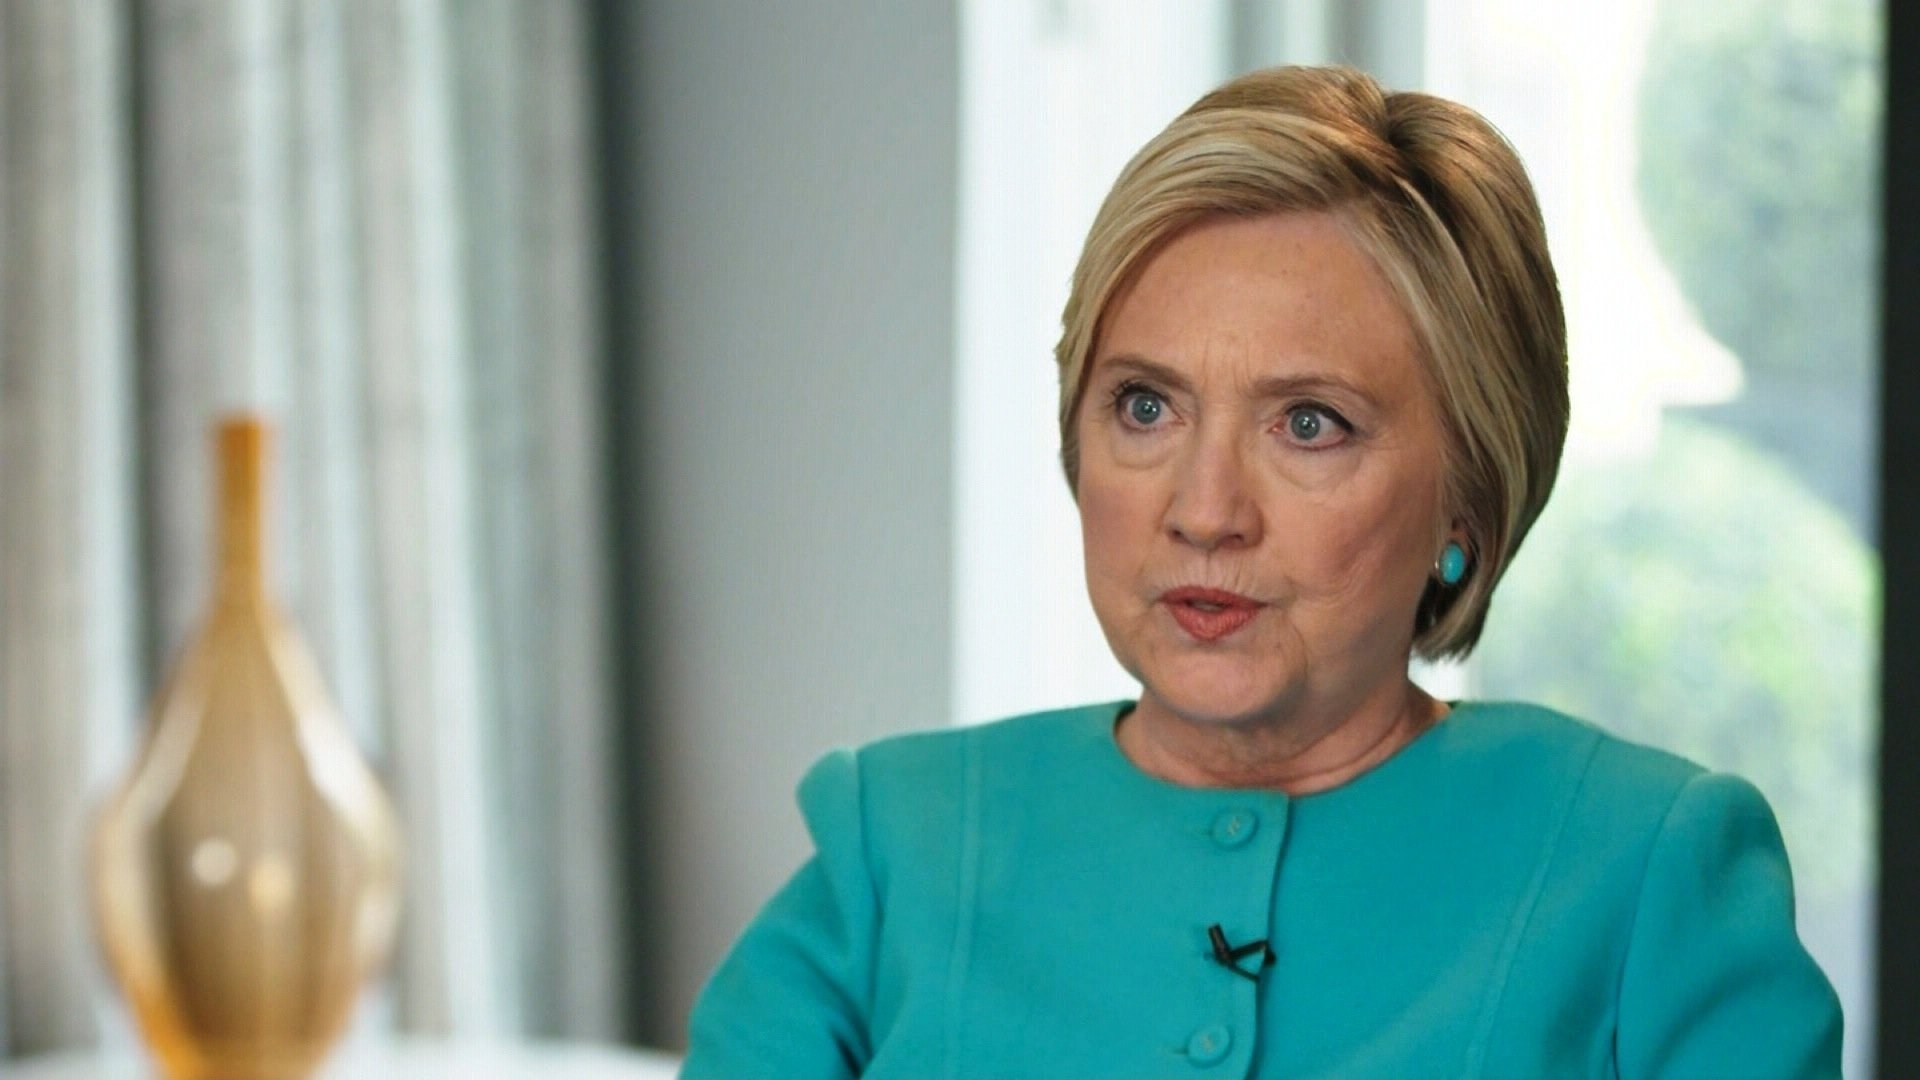 Hillary released a statement condemning major Democratic donor Harvey Weinstein. photo courtesy of CNN.